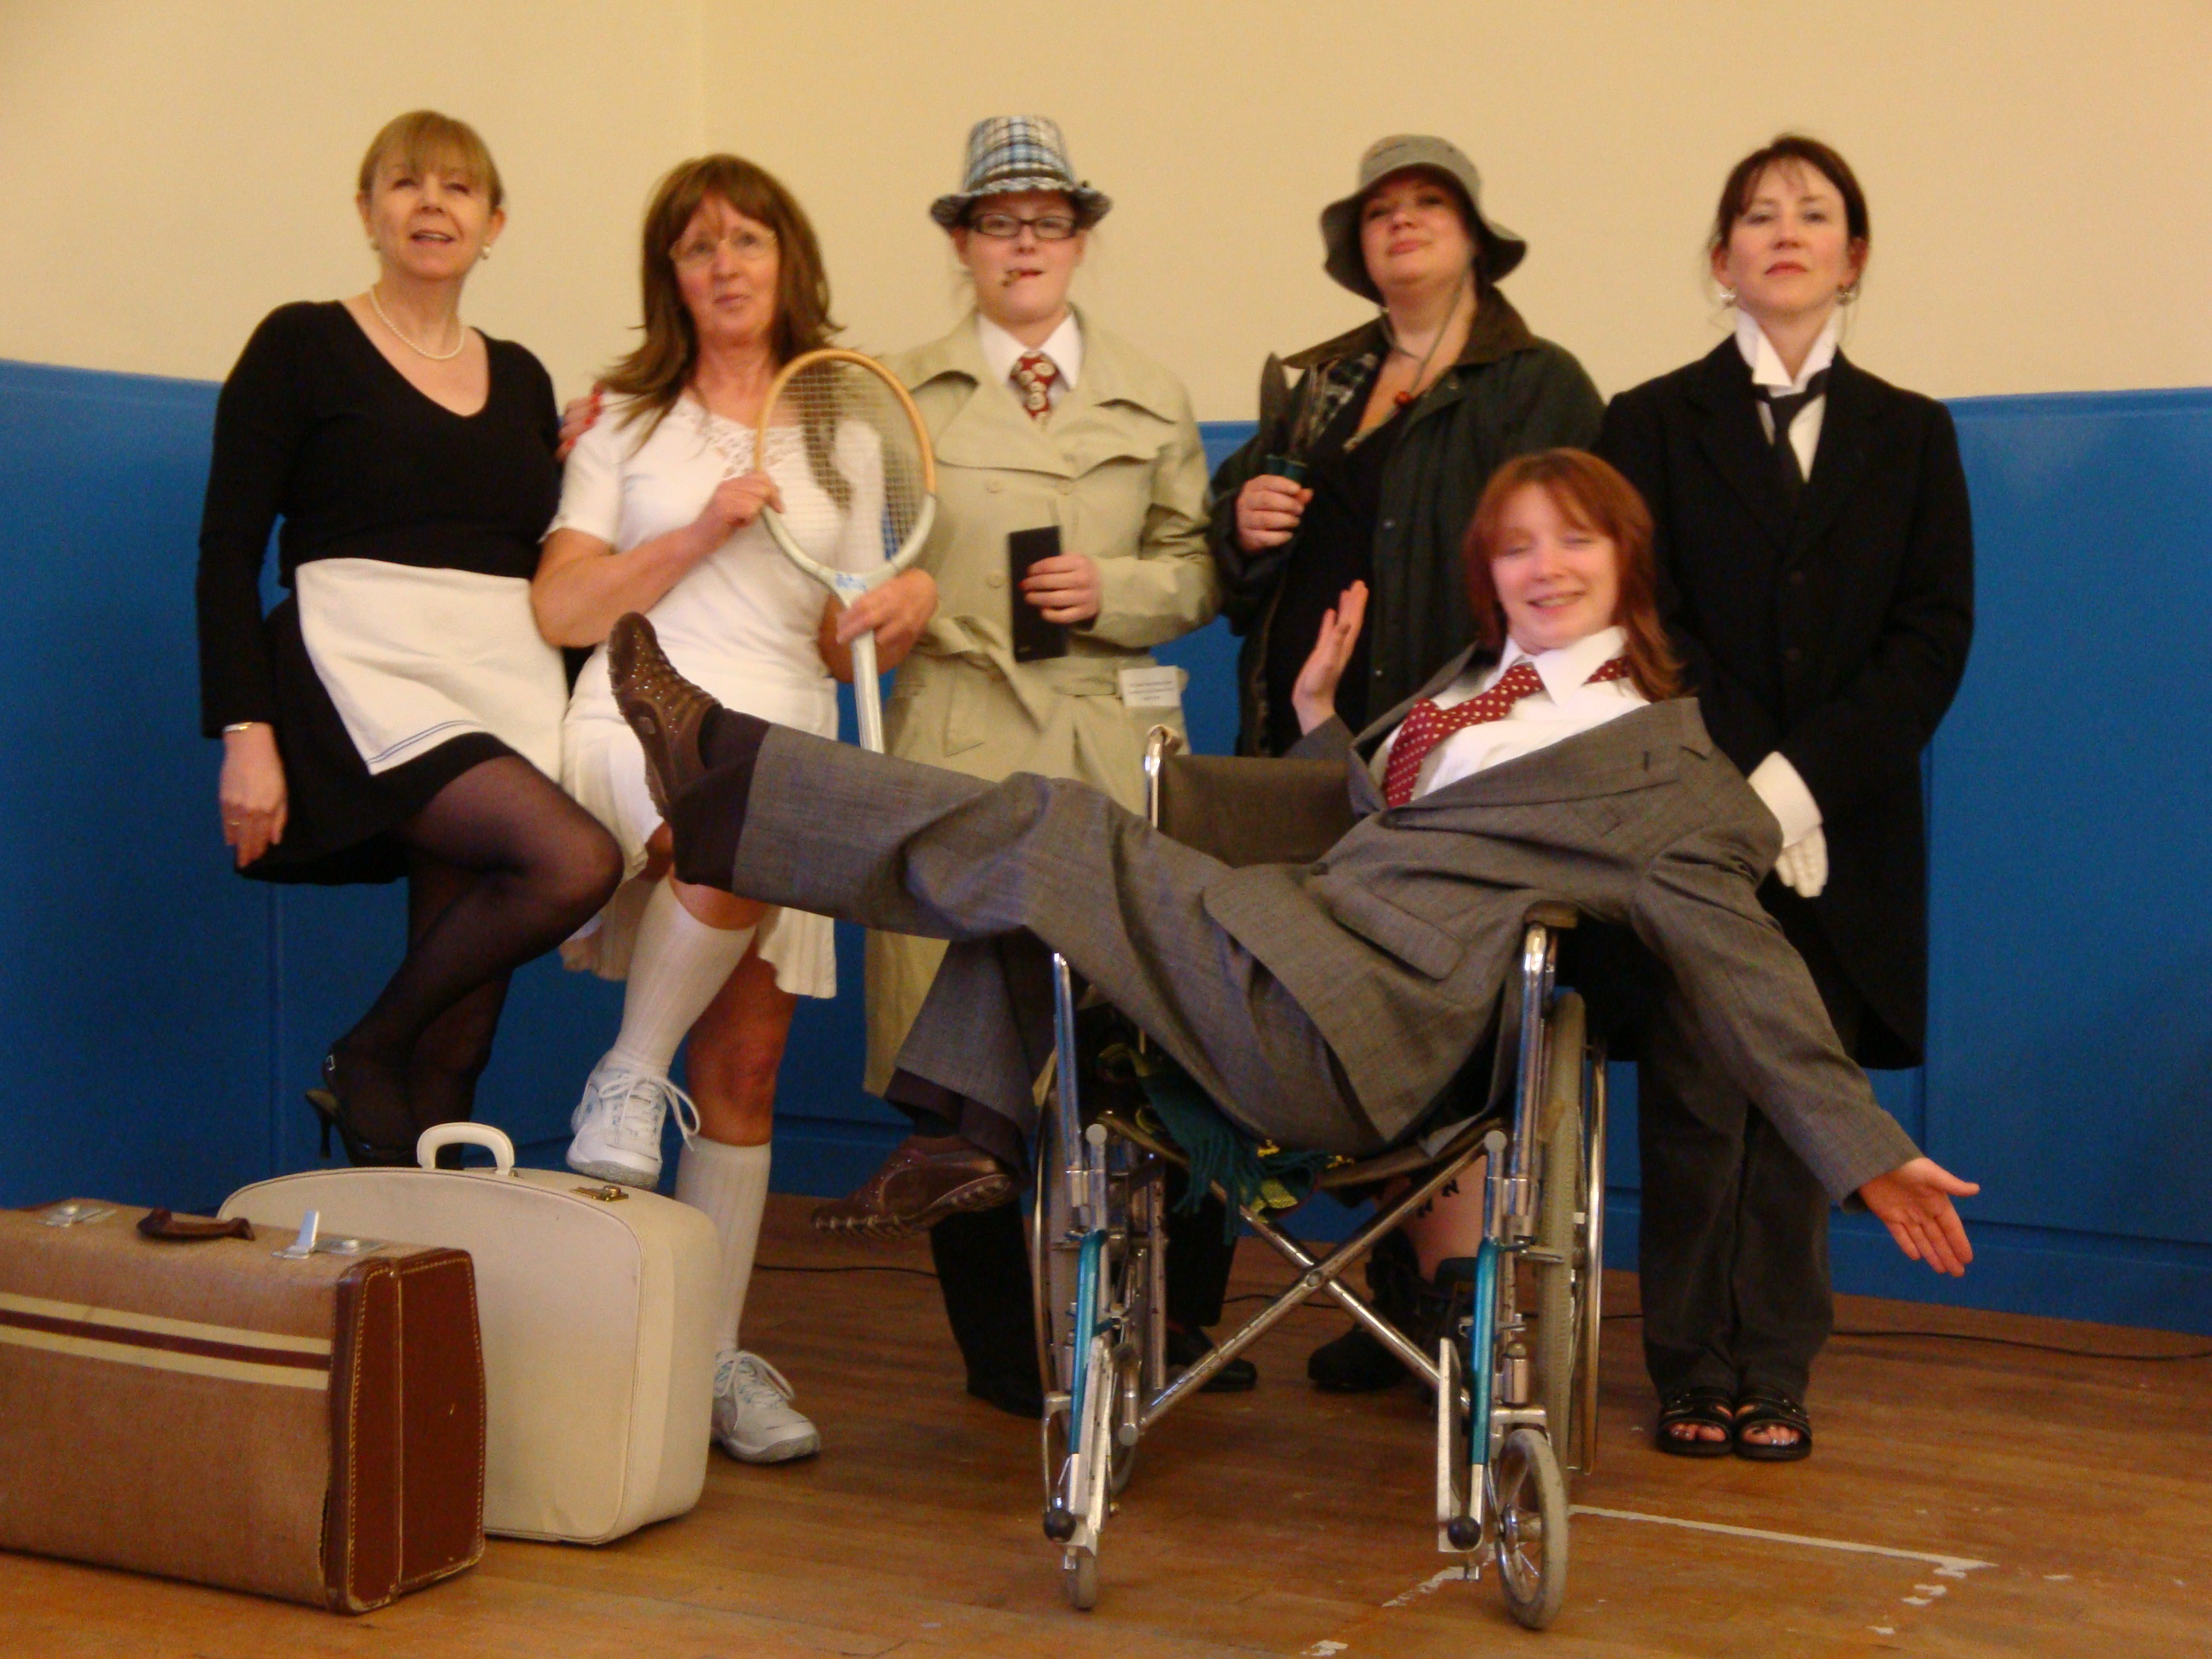 Letham Drama Group is a small, friendly, amateur live theatre group.